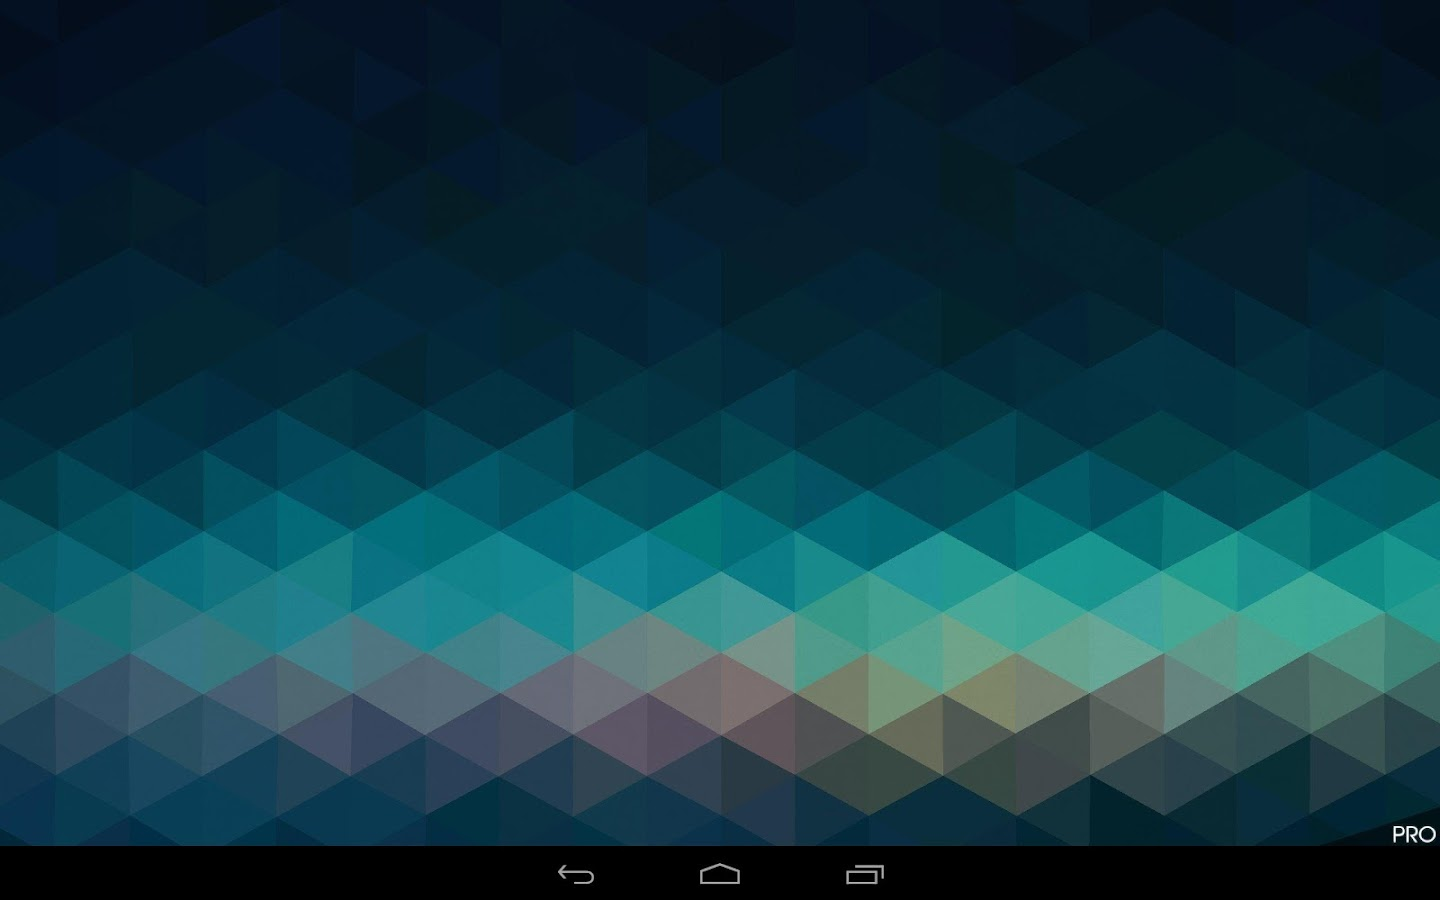 Fracta Live Wallpaper Android Apps on Google Play